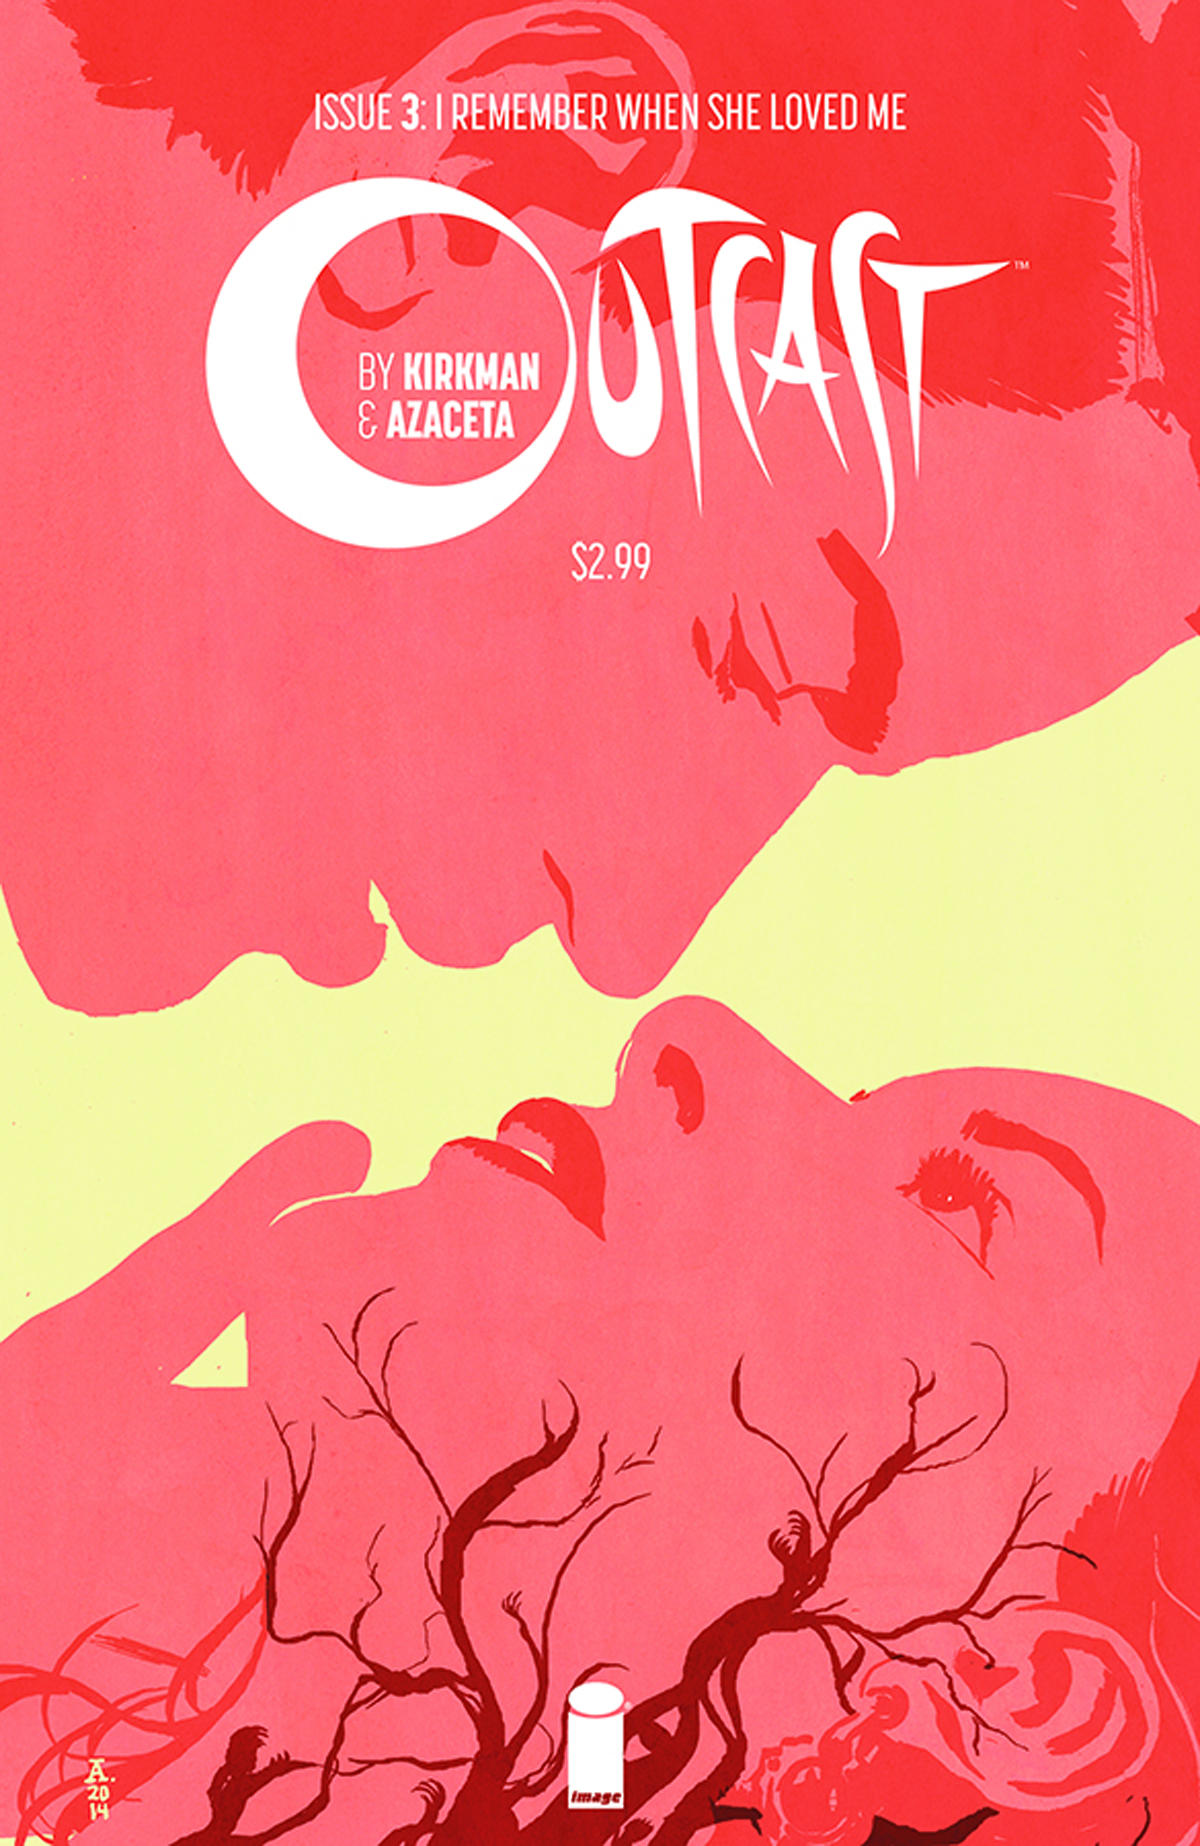 OUTCAST BY KIRKMAN & AZACETA #3 (MR)